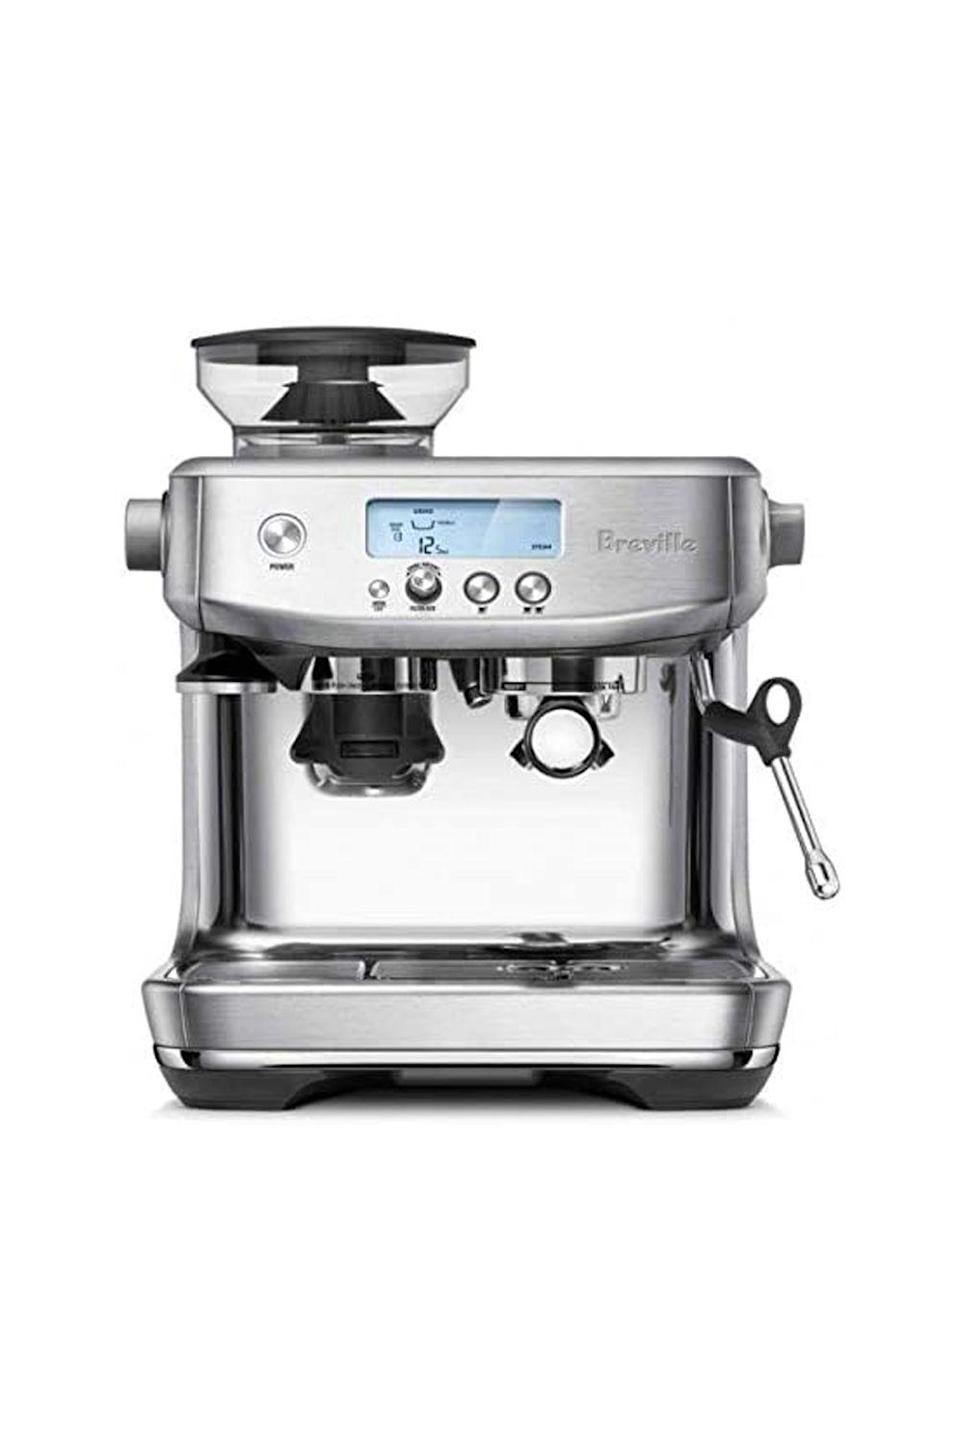 "<p><strong>Breville</strong></p><p>amazon.com</p><p><strong>$794.00</strong></p><p><a href=""https://www.amazon.com/dp/B08133HX34?tag=syn-yahoo-20&ascsubtag=%5Bartid%7C10070.g.34635953%5Bsrc%7Cyahoo-us"" rel=""nofollow noopener"" target=""_blank"" data-ylk=""slk:Shop Now"" class=""link rapid-noclick-resp"">Shop Now</a></p><p>This espresso machine comes with some serious bells and whistles—think temperature-controlled espresso extraction, an intuitive LED display, and a steam wand that makes creating custom latte art a cinch. Their kitchen will transform into a gourmet coffeehouse overnight.</p>"